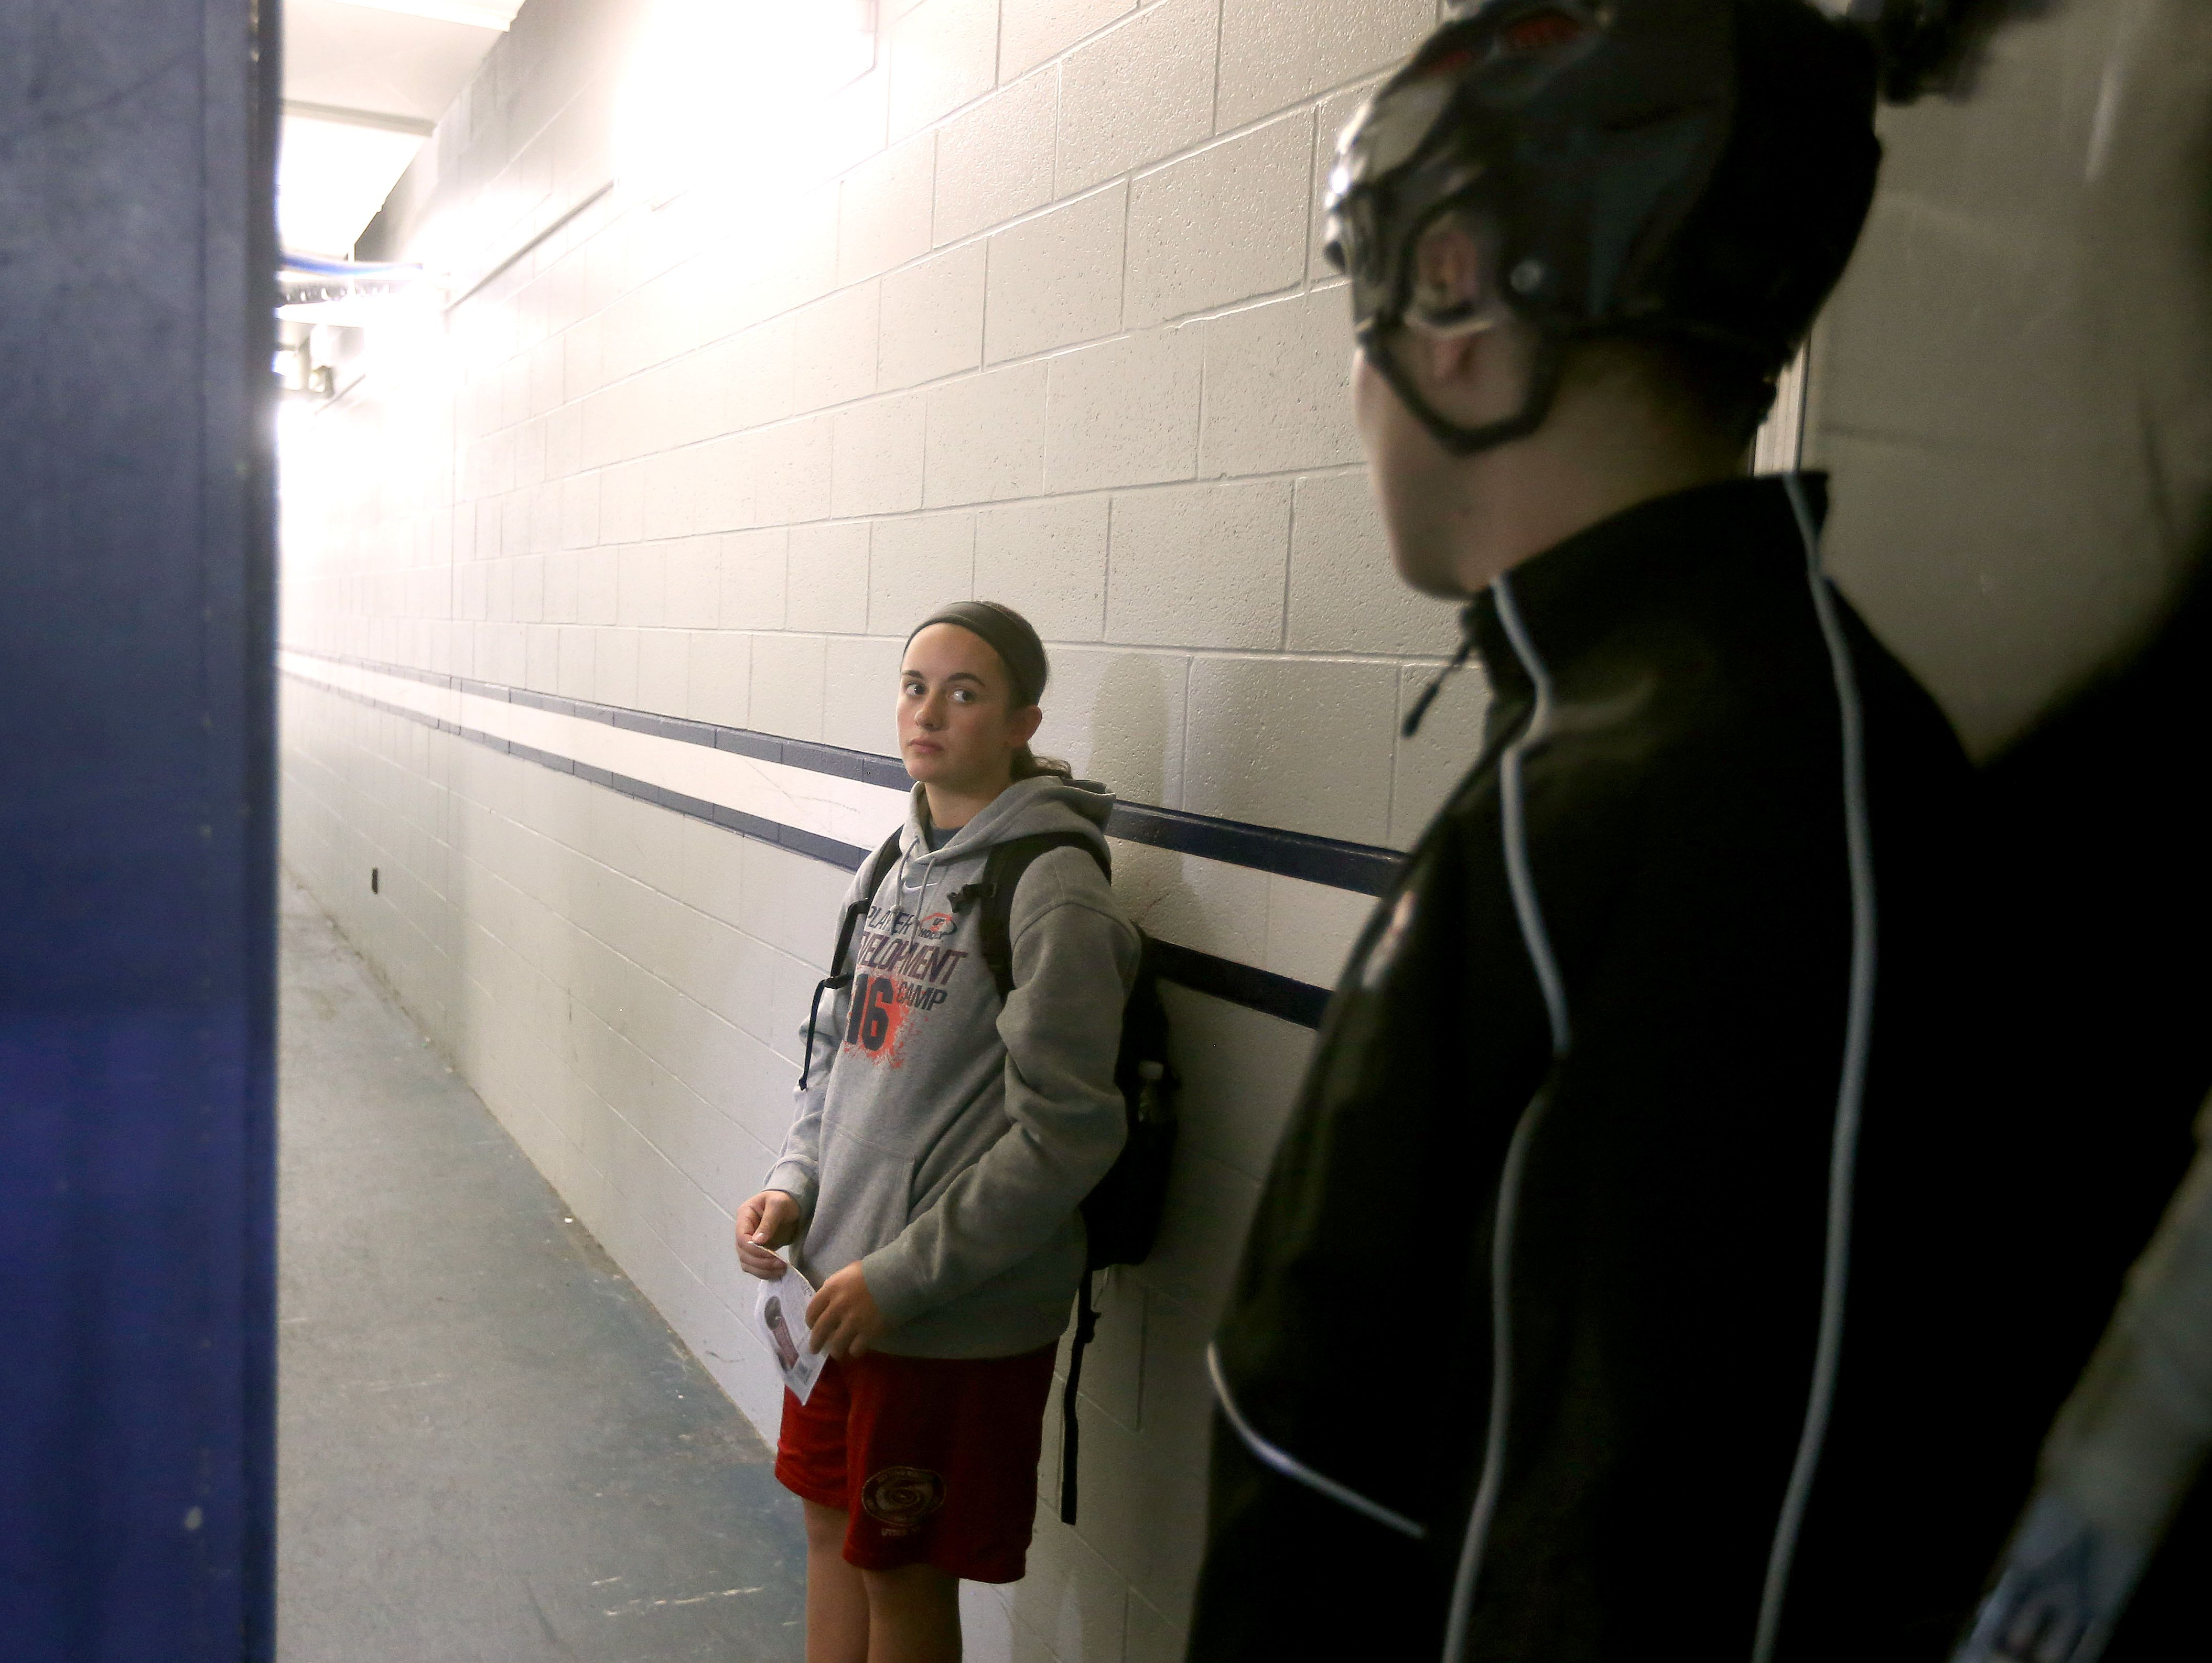 Bishop Kearney hockey player Mackenzie Emery talking with head coach Chris Baudo before practice. Emery was recovering from a concussion. Kearney is in its first year of an elite girls hockey program at the private school in Irondequoit.